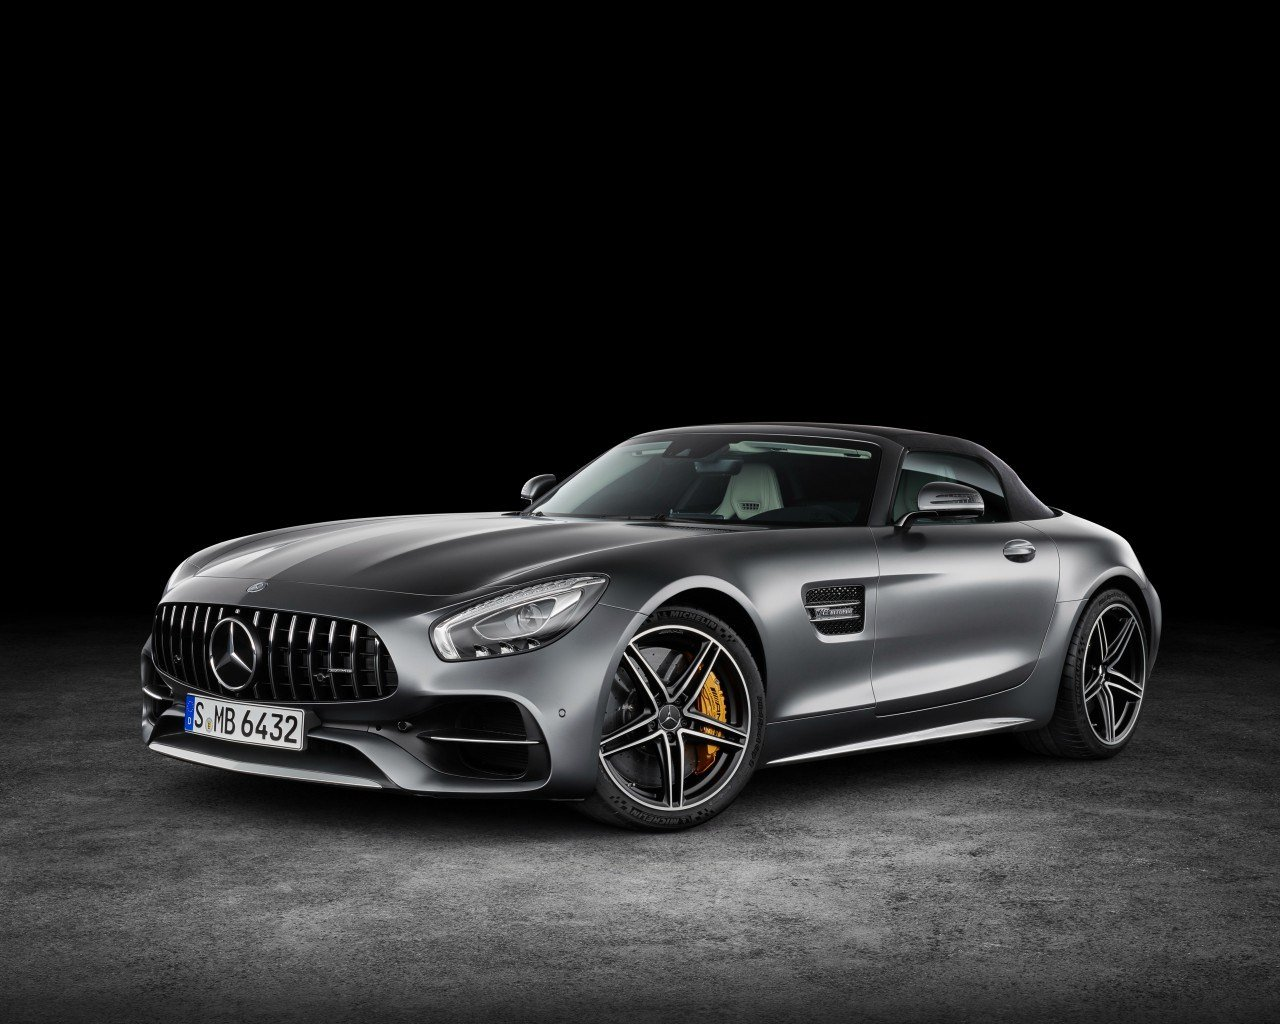 Latest Wallpaper Mercedes Amg Gt C Roadster 2018 Cars Mercedes Free Download